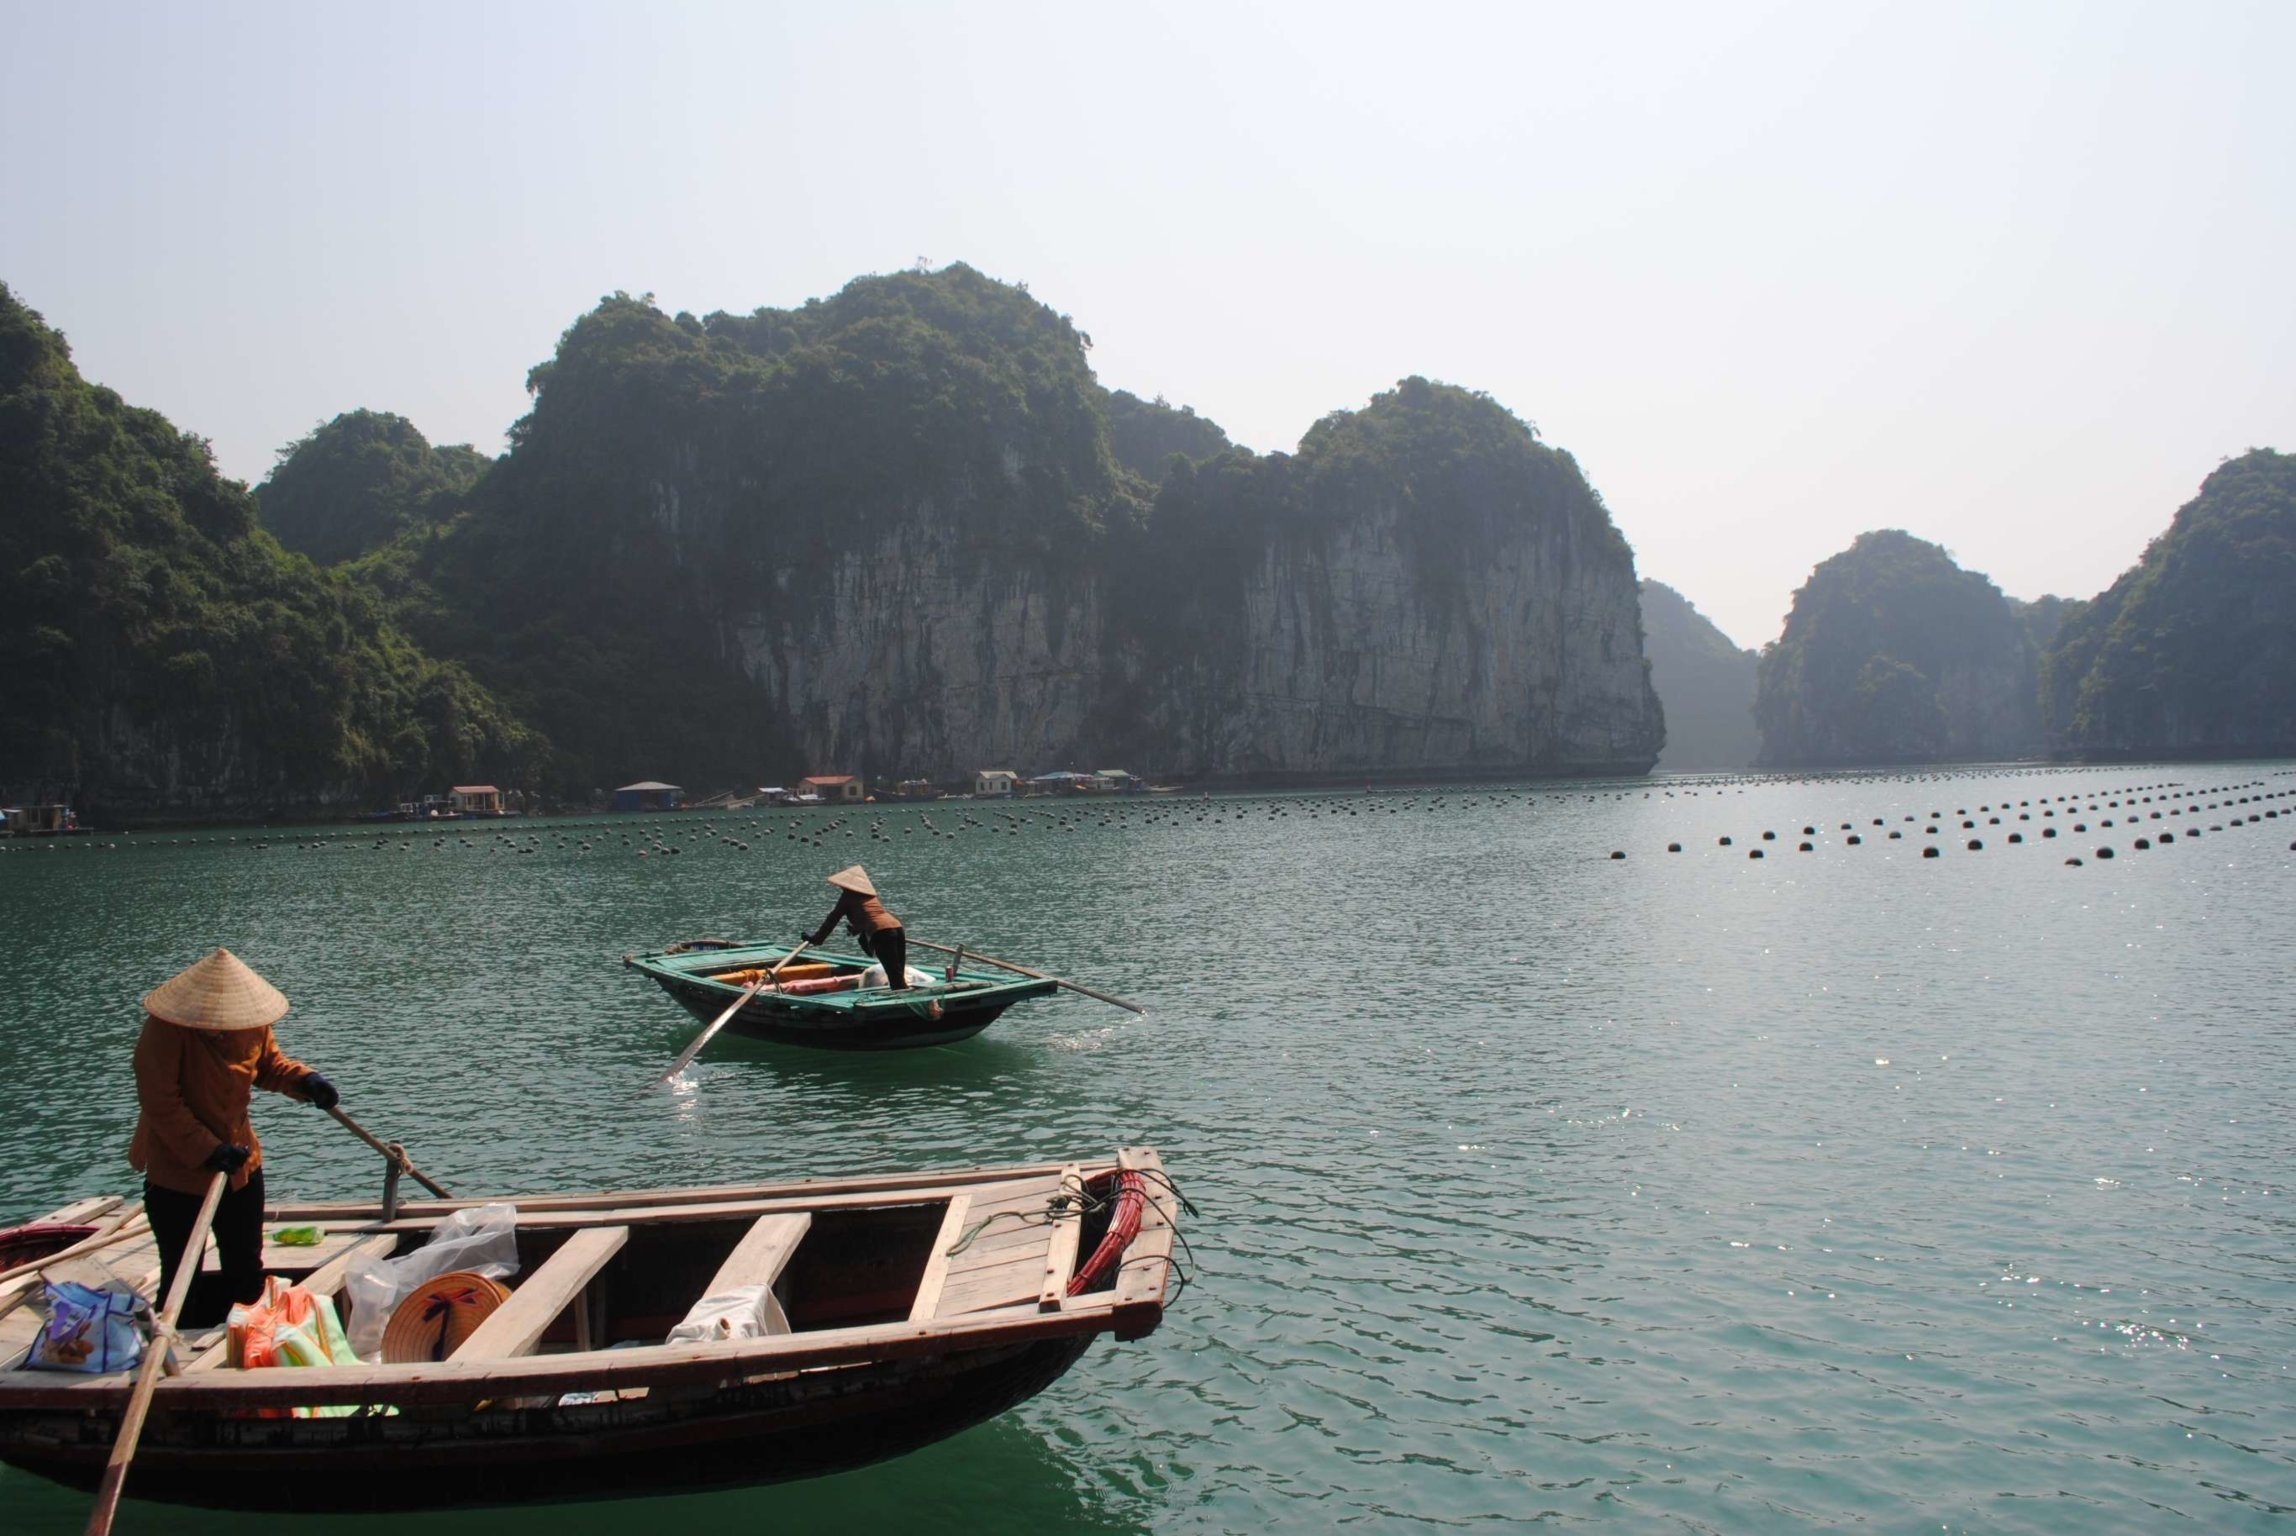 4-Day Hanoi & Halong Bay - Vietnam Itinerary